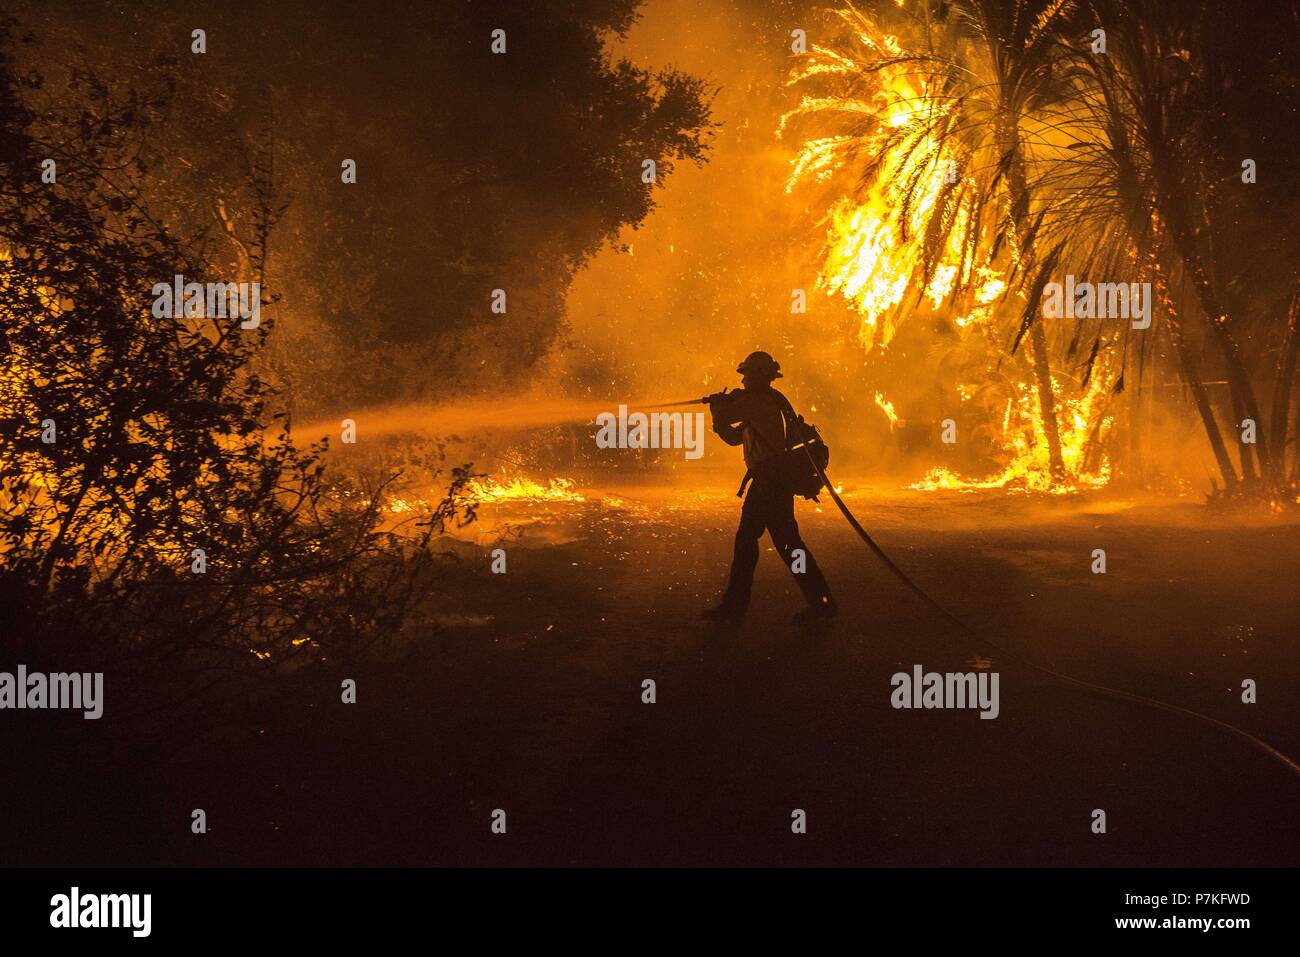 Goleta, California, USA. 6th July, 2018. A Firefighters fights the HOLIDAY FIRE north of Fairview Avenue Friday evening. Credit: Erick Madrid/ZUMA Wire/Alamy Live News - Stock Image